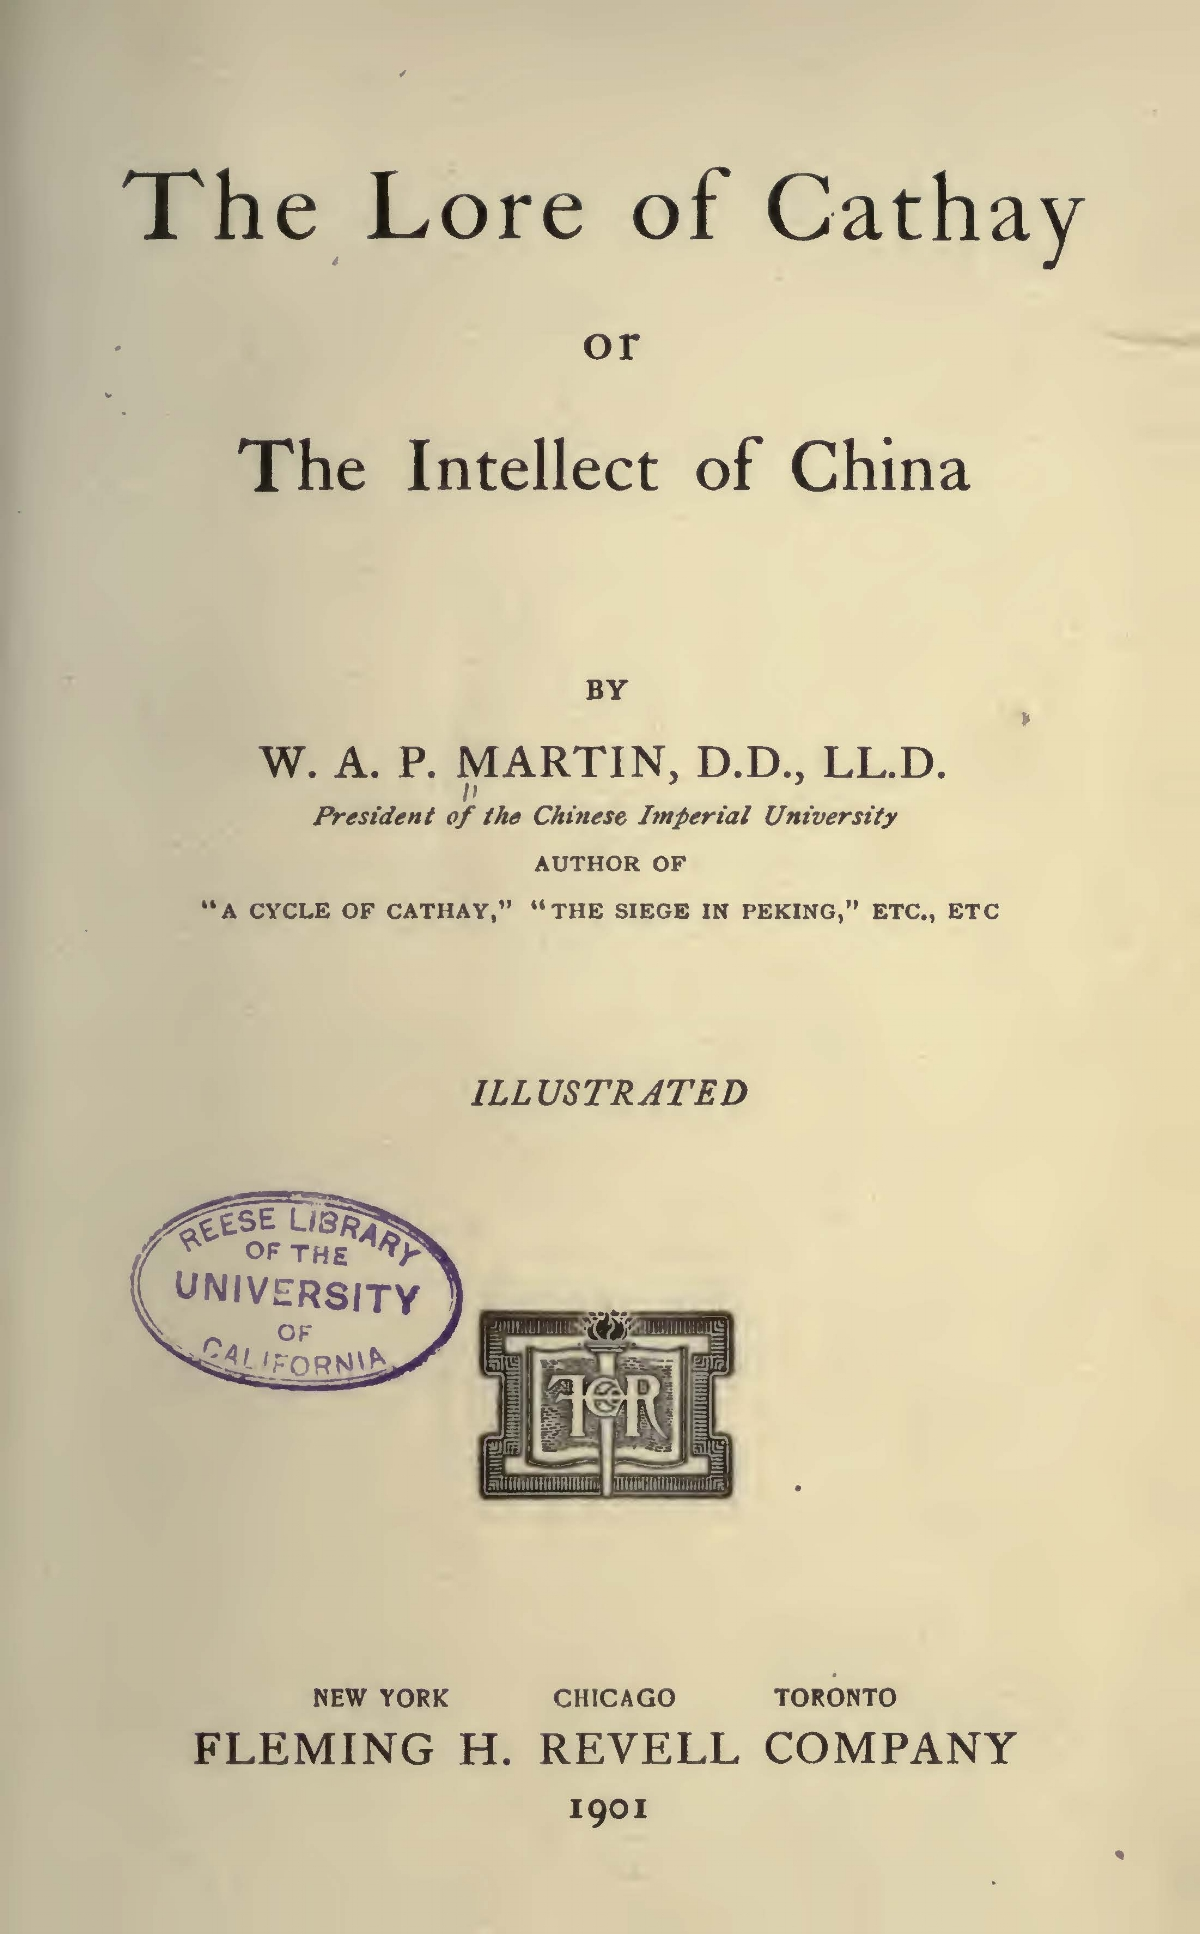 Martin, William Alexander Parsons, The Lore of Cathay Title Page.jpg